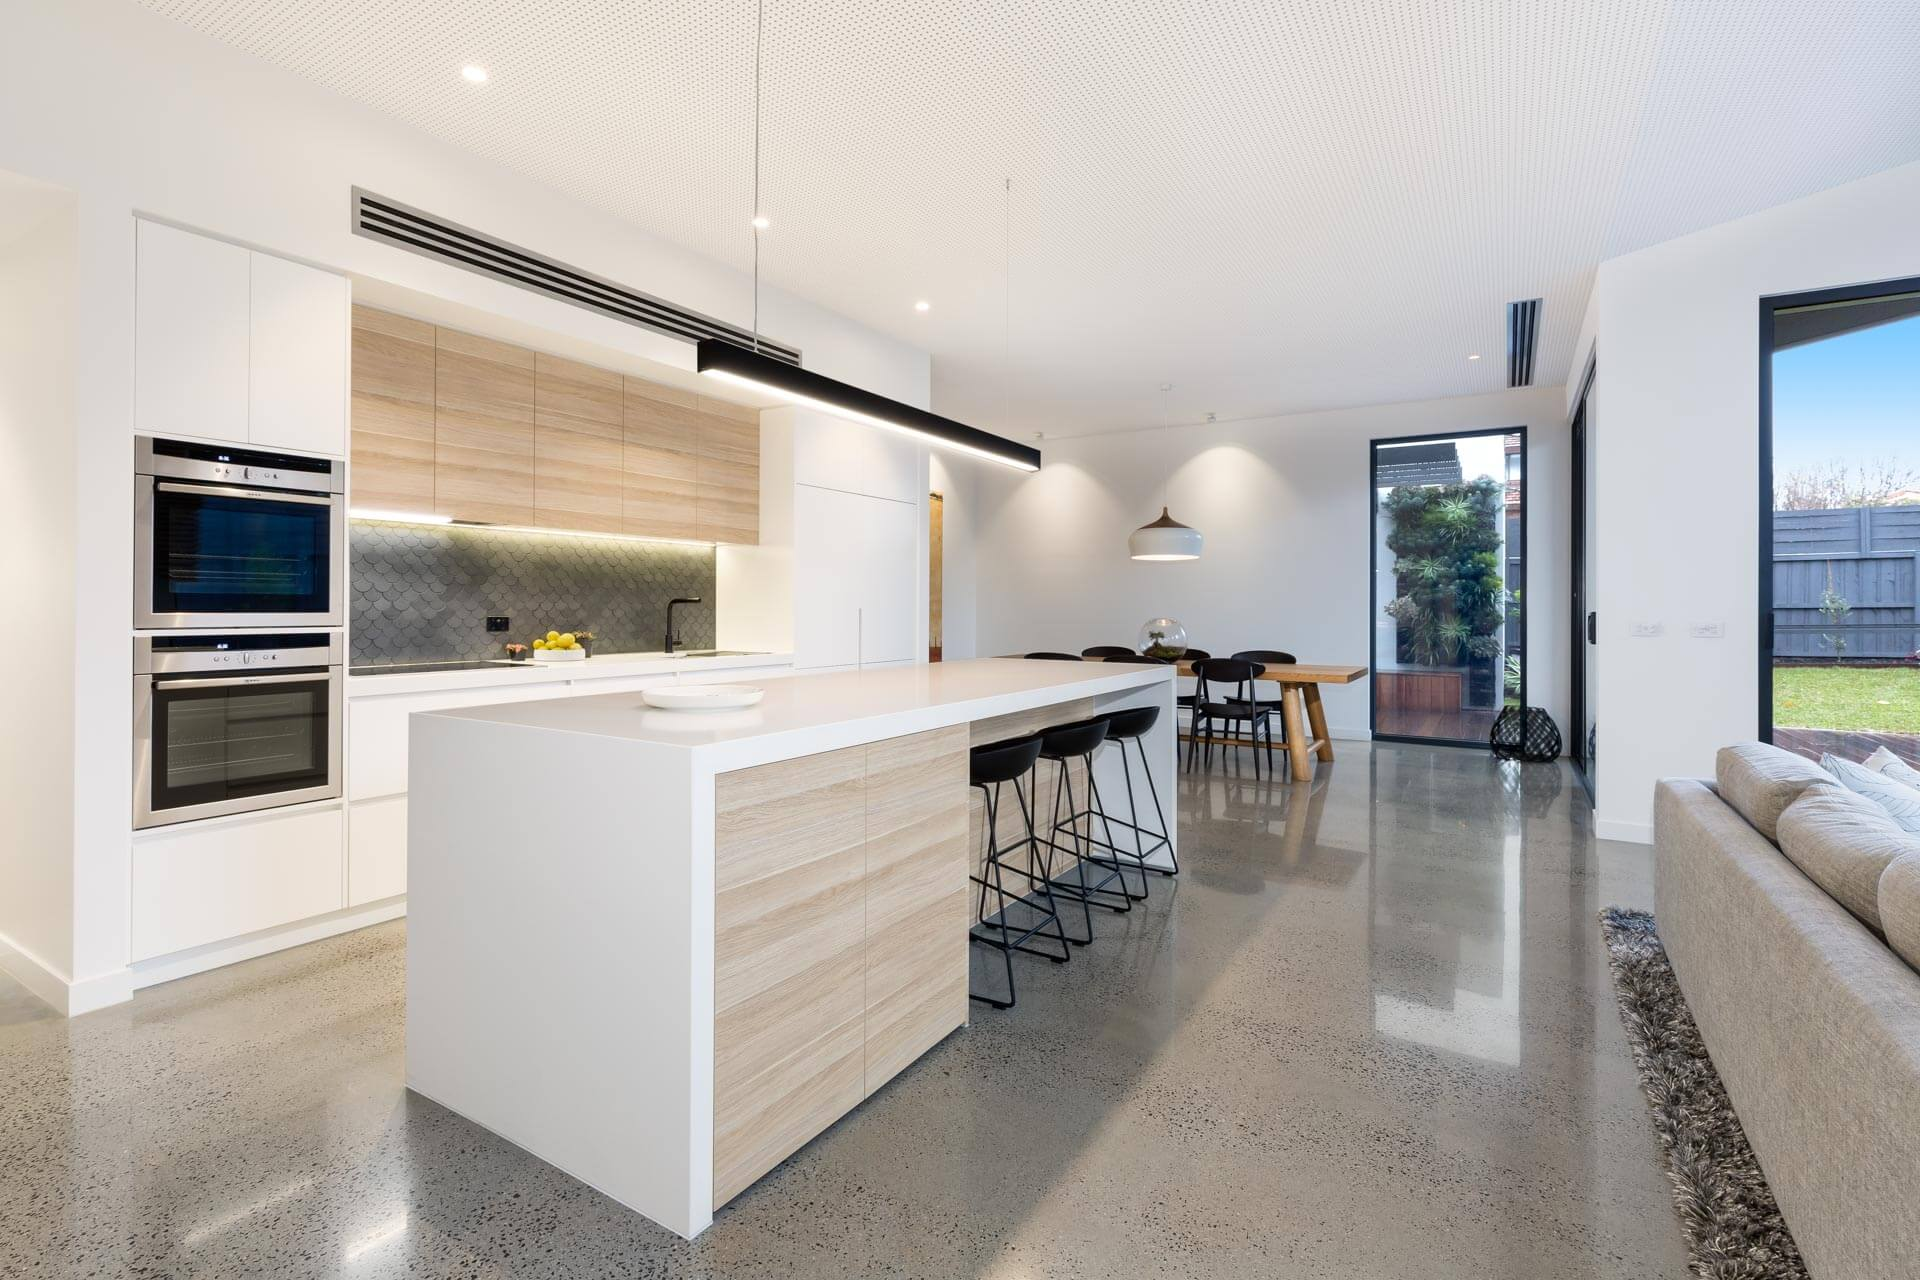 rtp-lifestyle-photography-mesh-design-kew-home-kitchen-cabinetry-island-tiling-sink-pendant-light